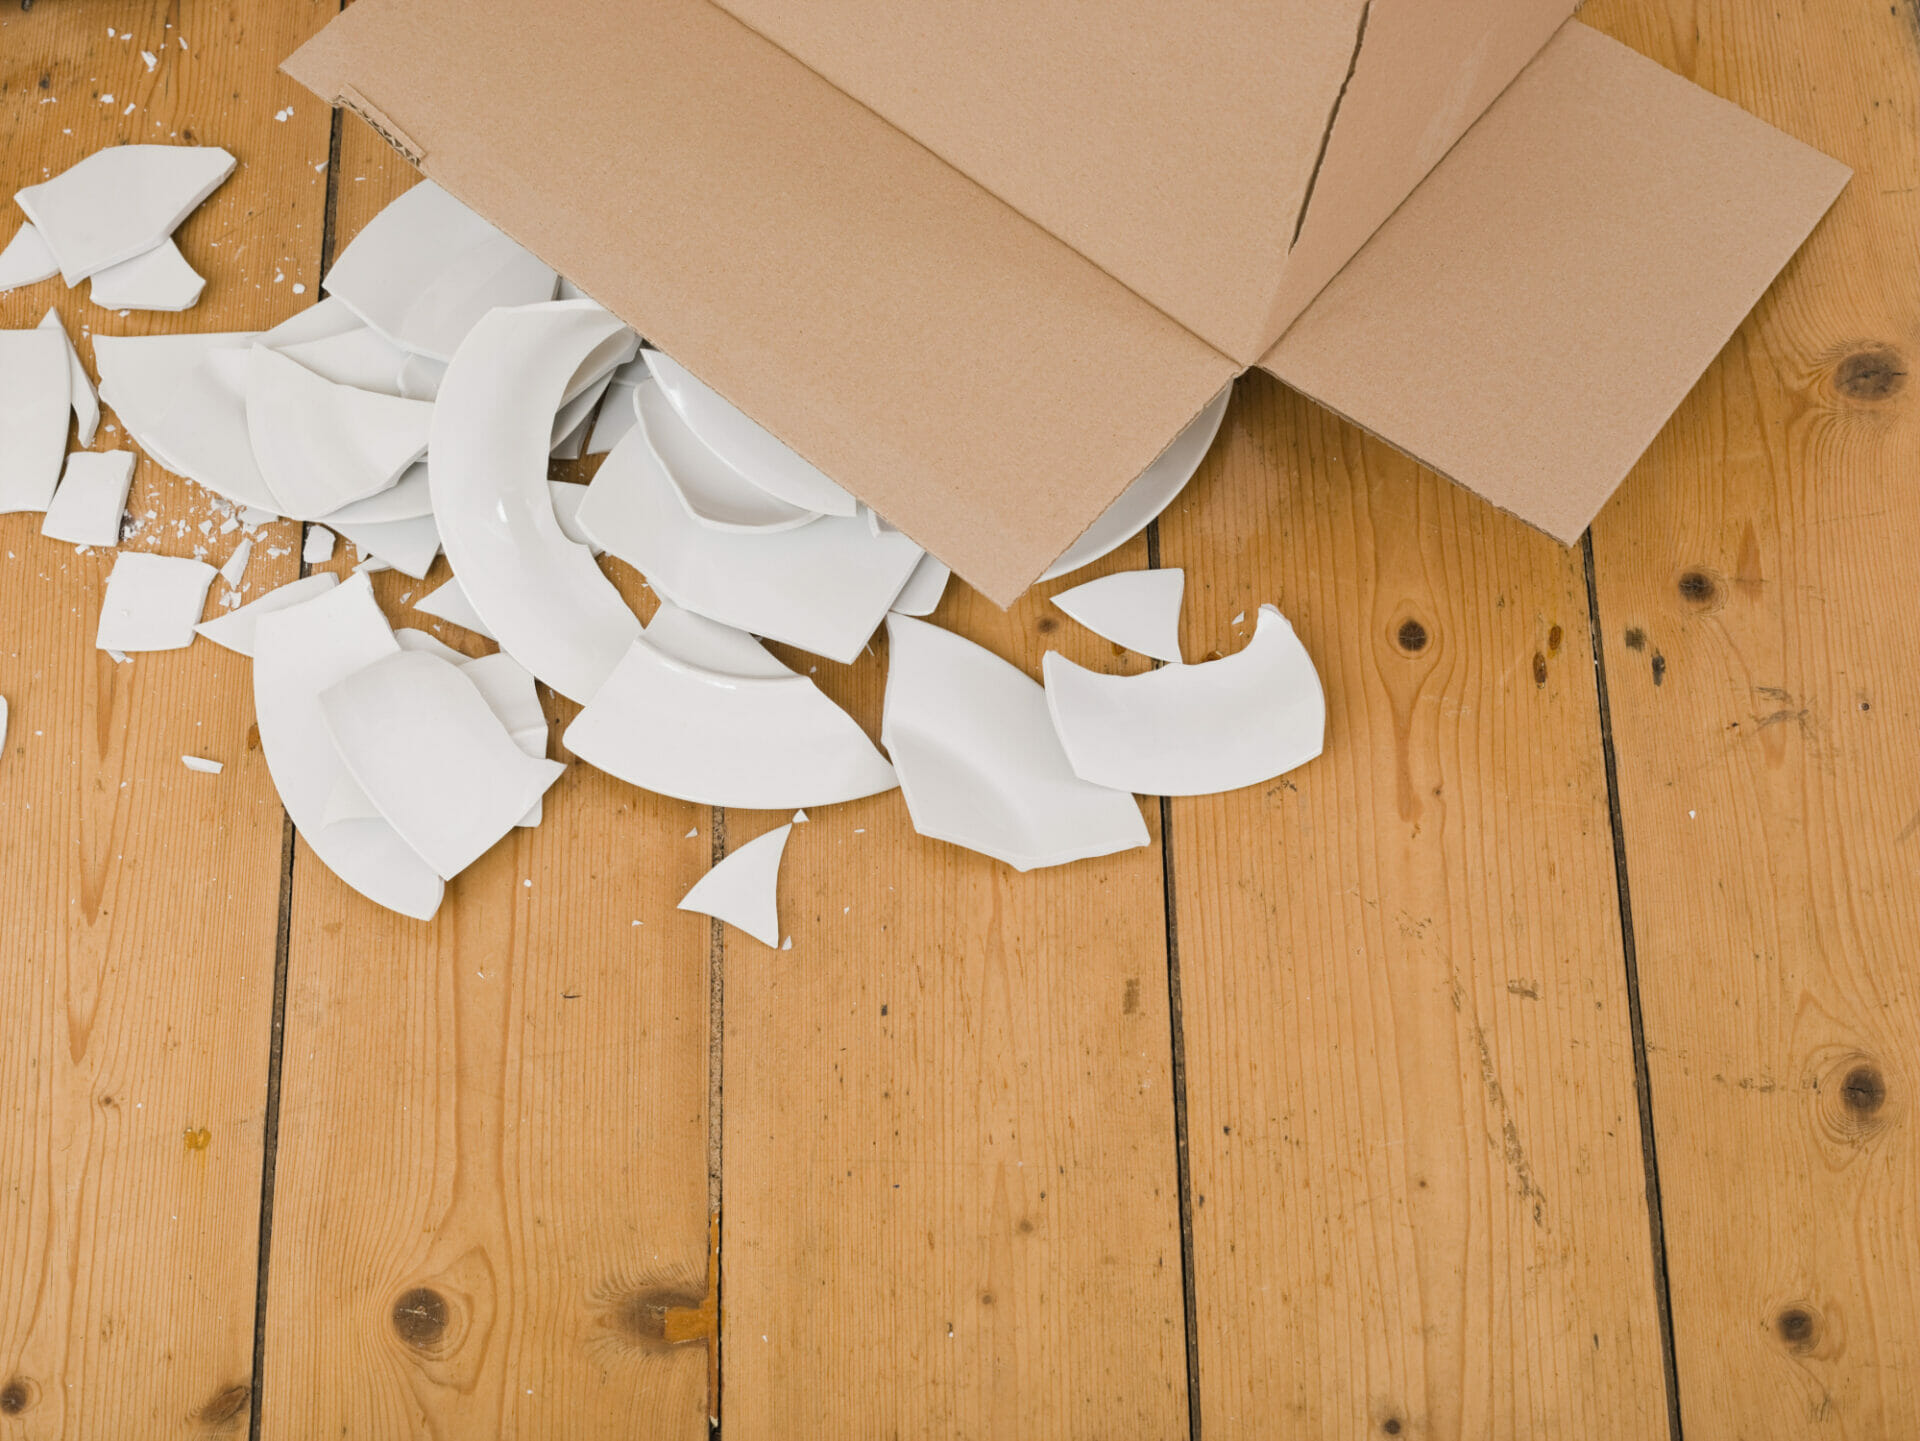 How to Save Your Marketing Plan from Falling to Pieces